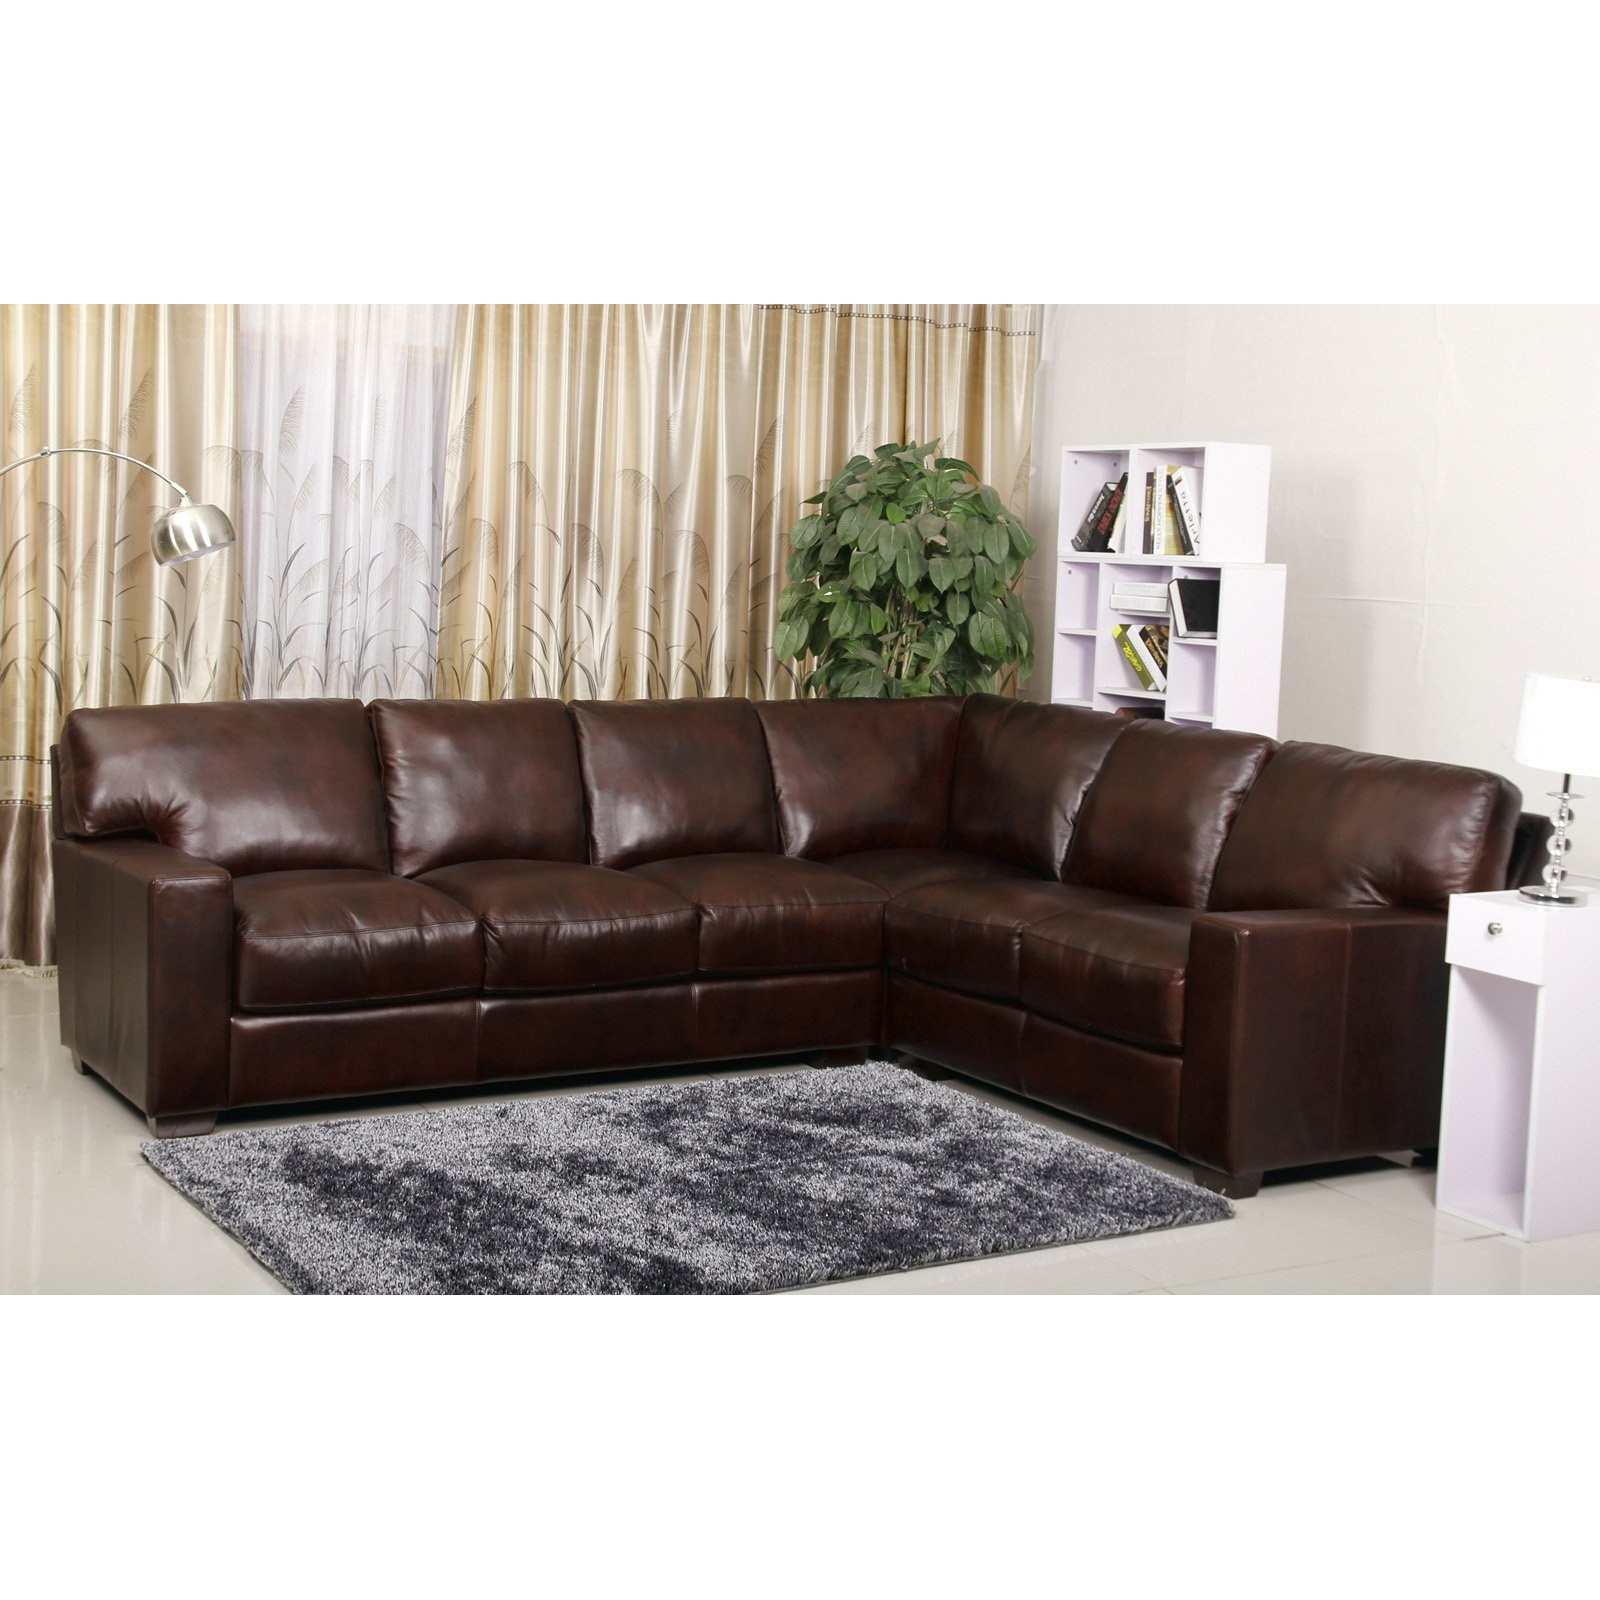 Abson Vana Premium Hand Rubbed Leather Sectional Sofa Two Tone Regarding Abbyson  Sectional Sofa (Image